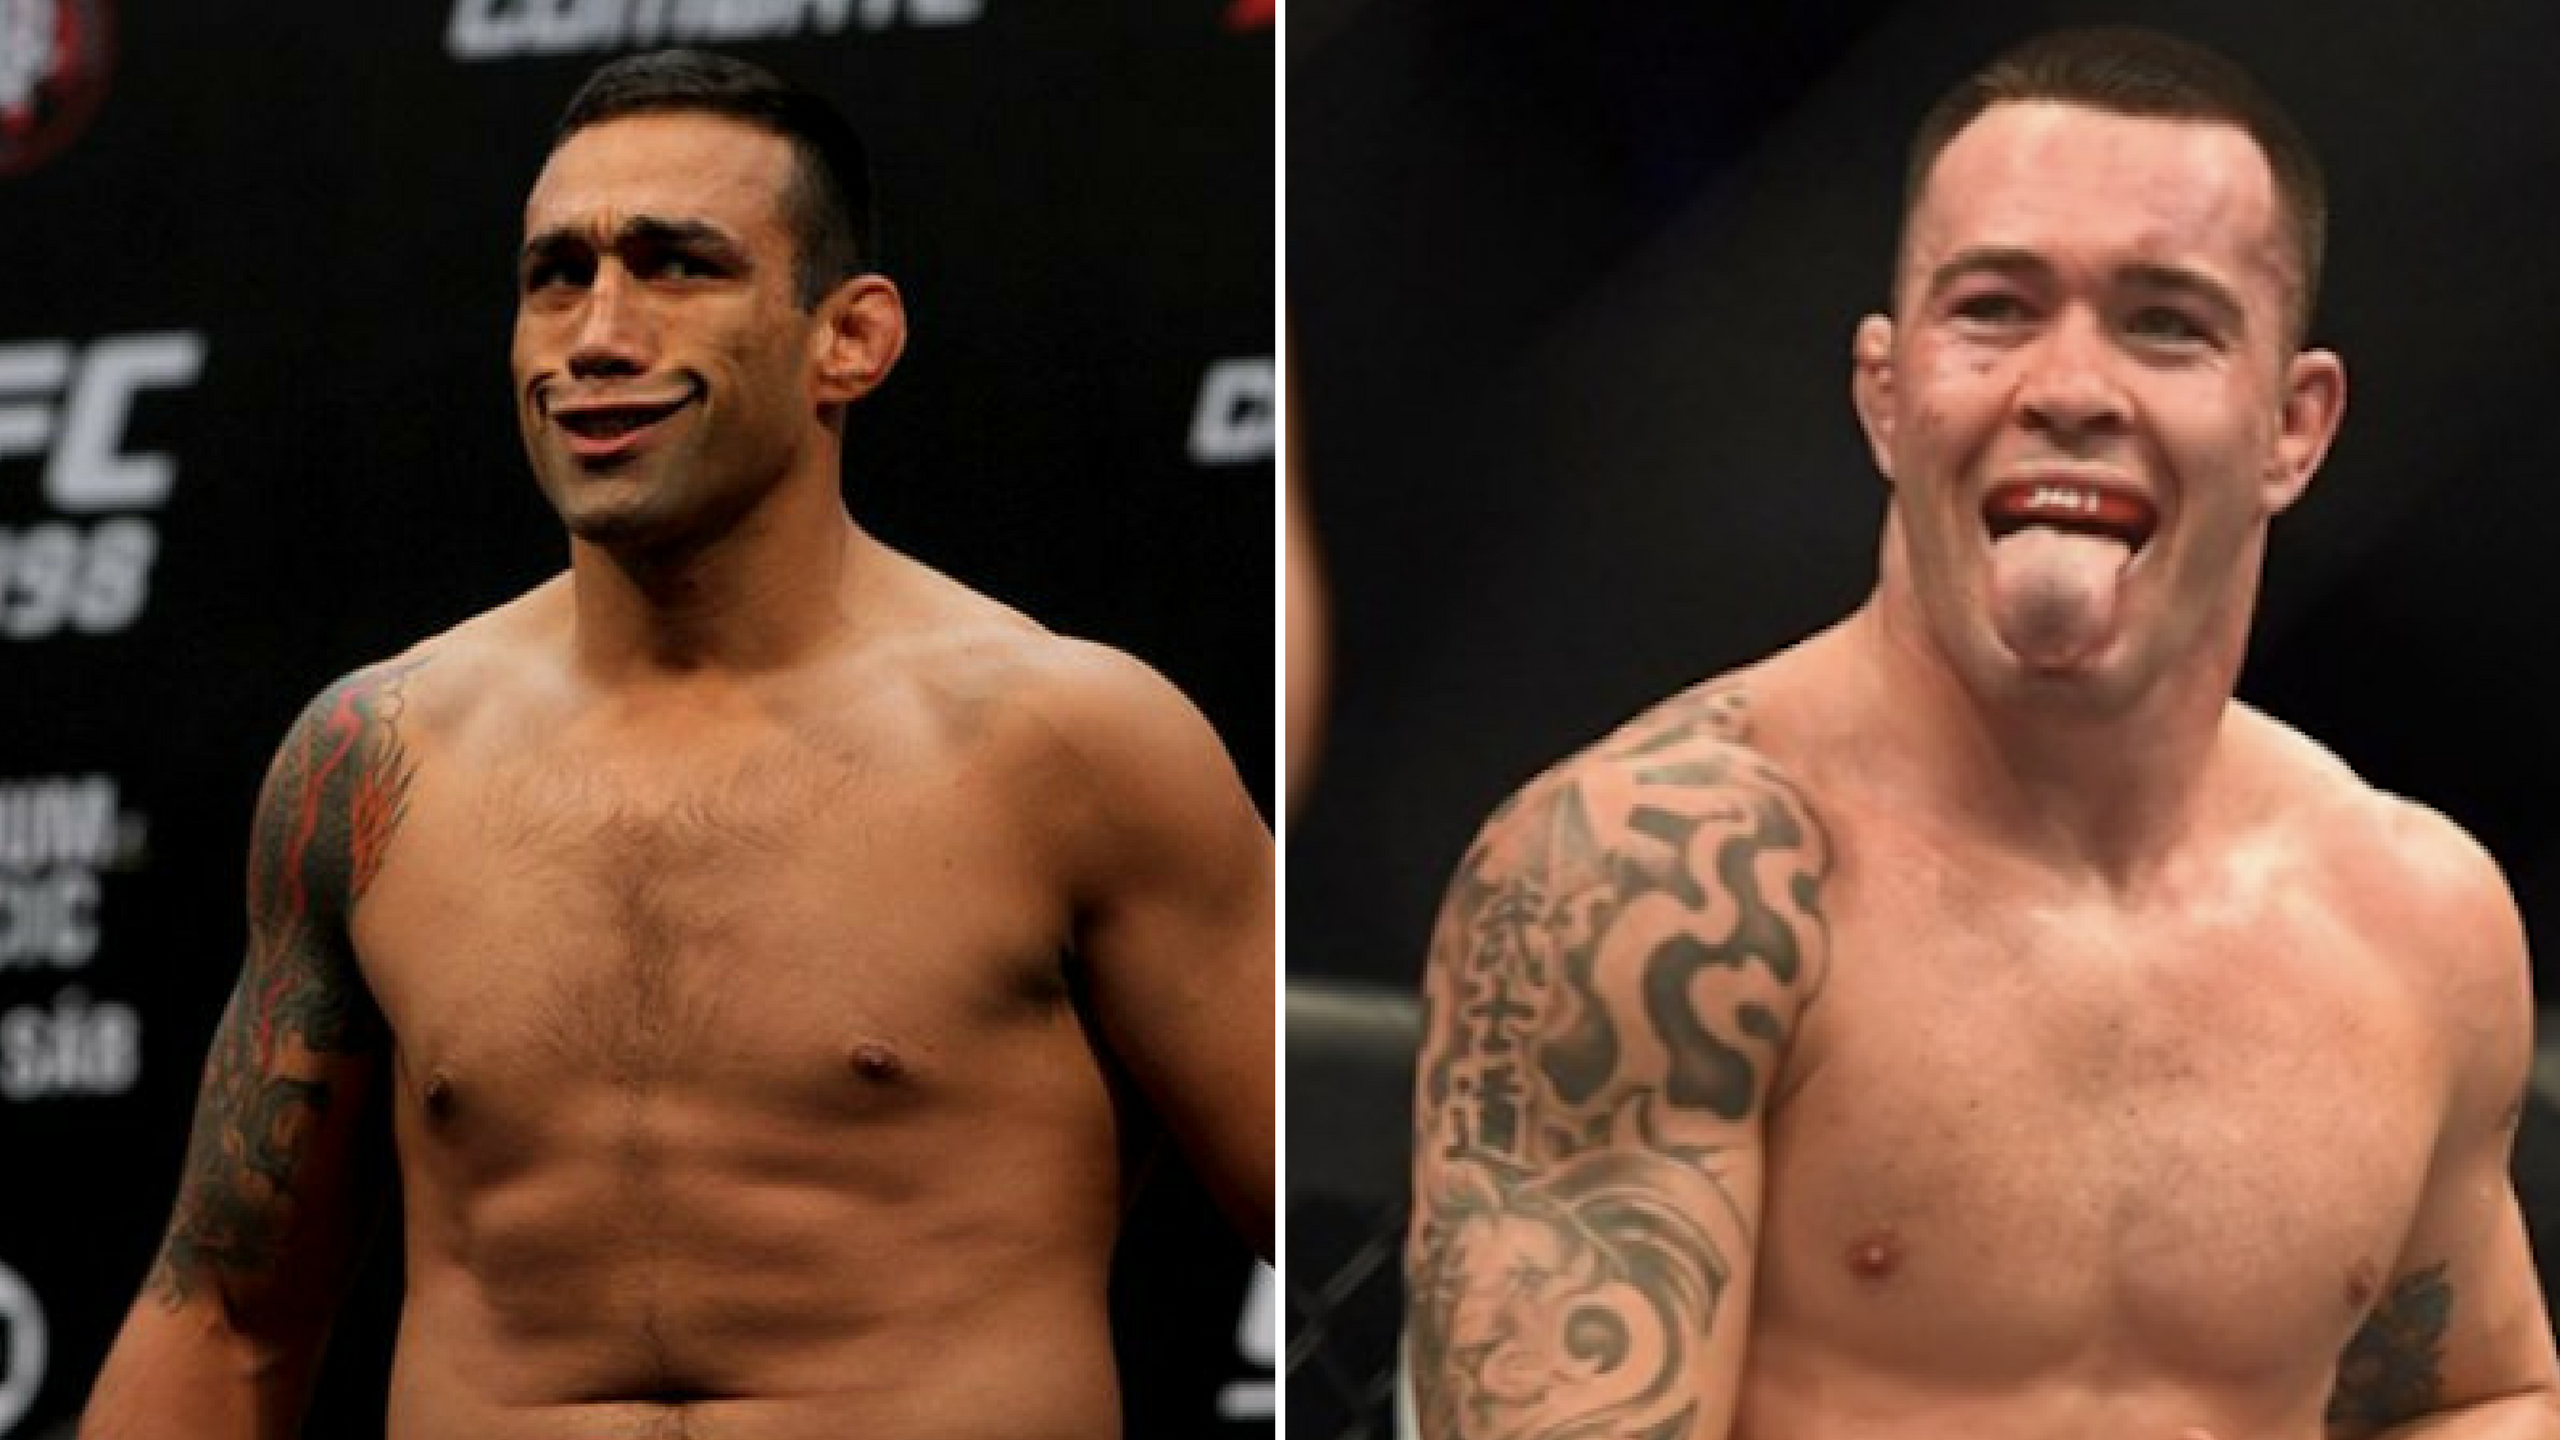 Colby calls the cops on Fabricio Werdum -